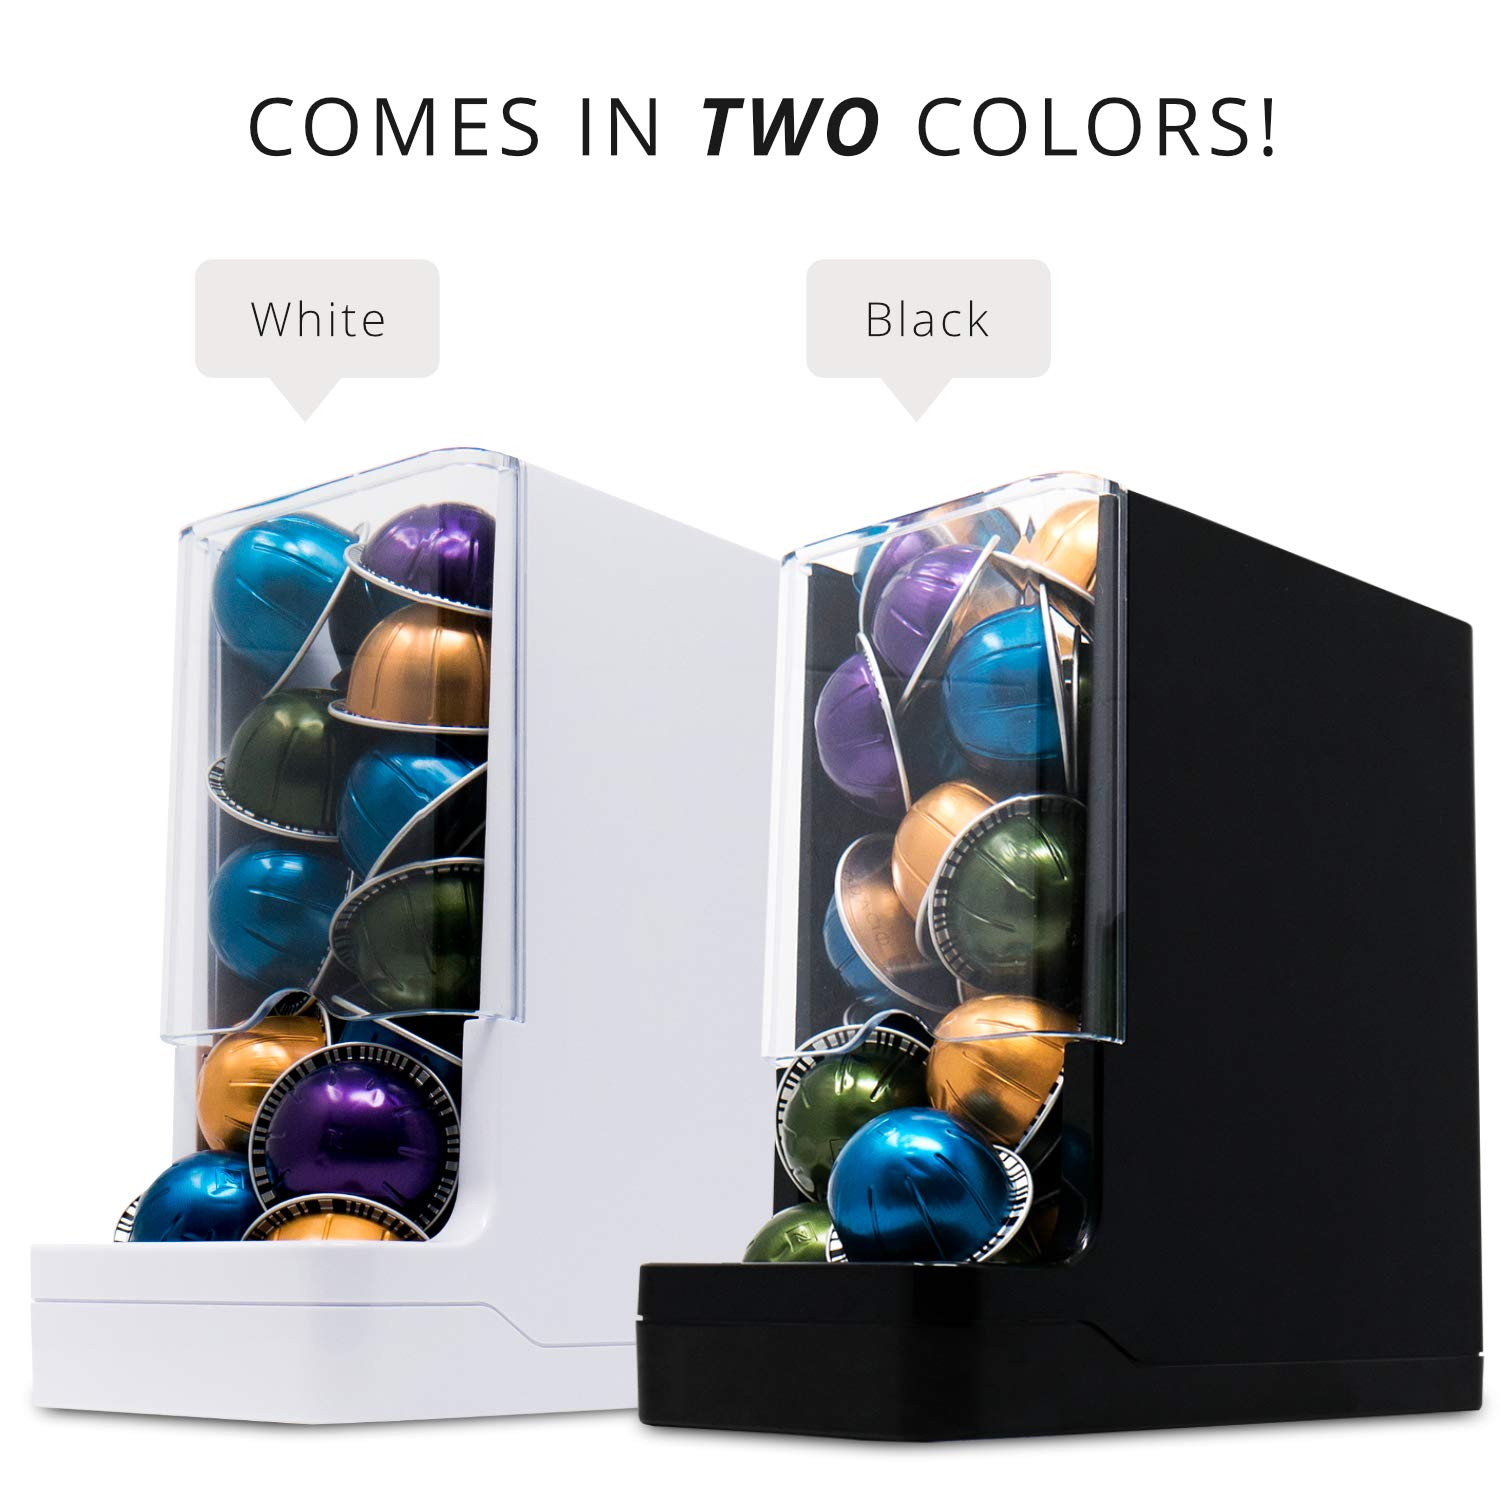 Never Run Out of Coffee - WePlenish Java - Smart Coffee Pod Holder with Amazon Dash Replenishment Built In | Nespresso Capsule and Keurig K-Cup Holder Black by WePlenish (Image #9)